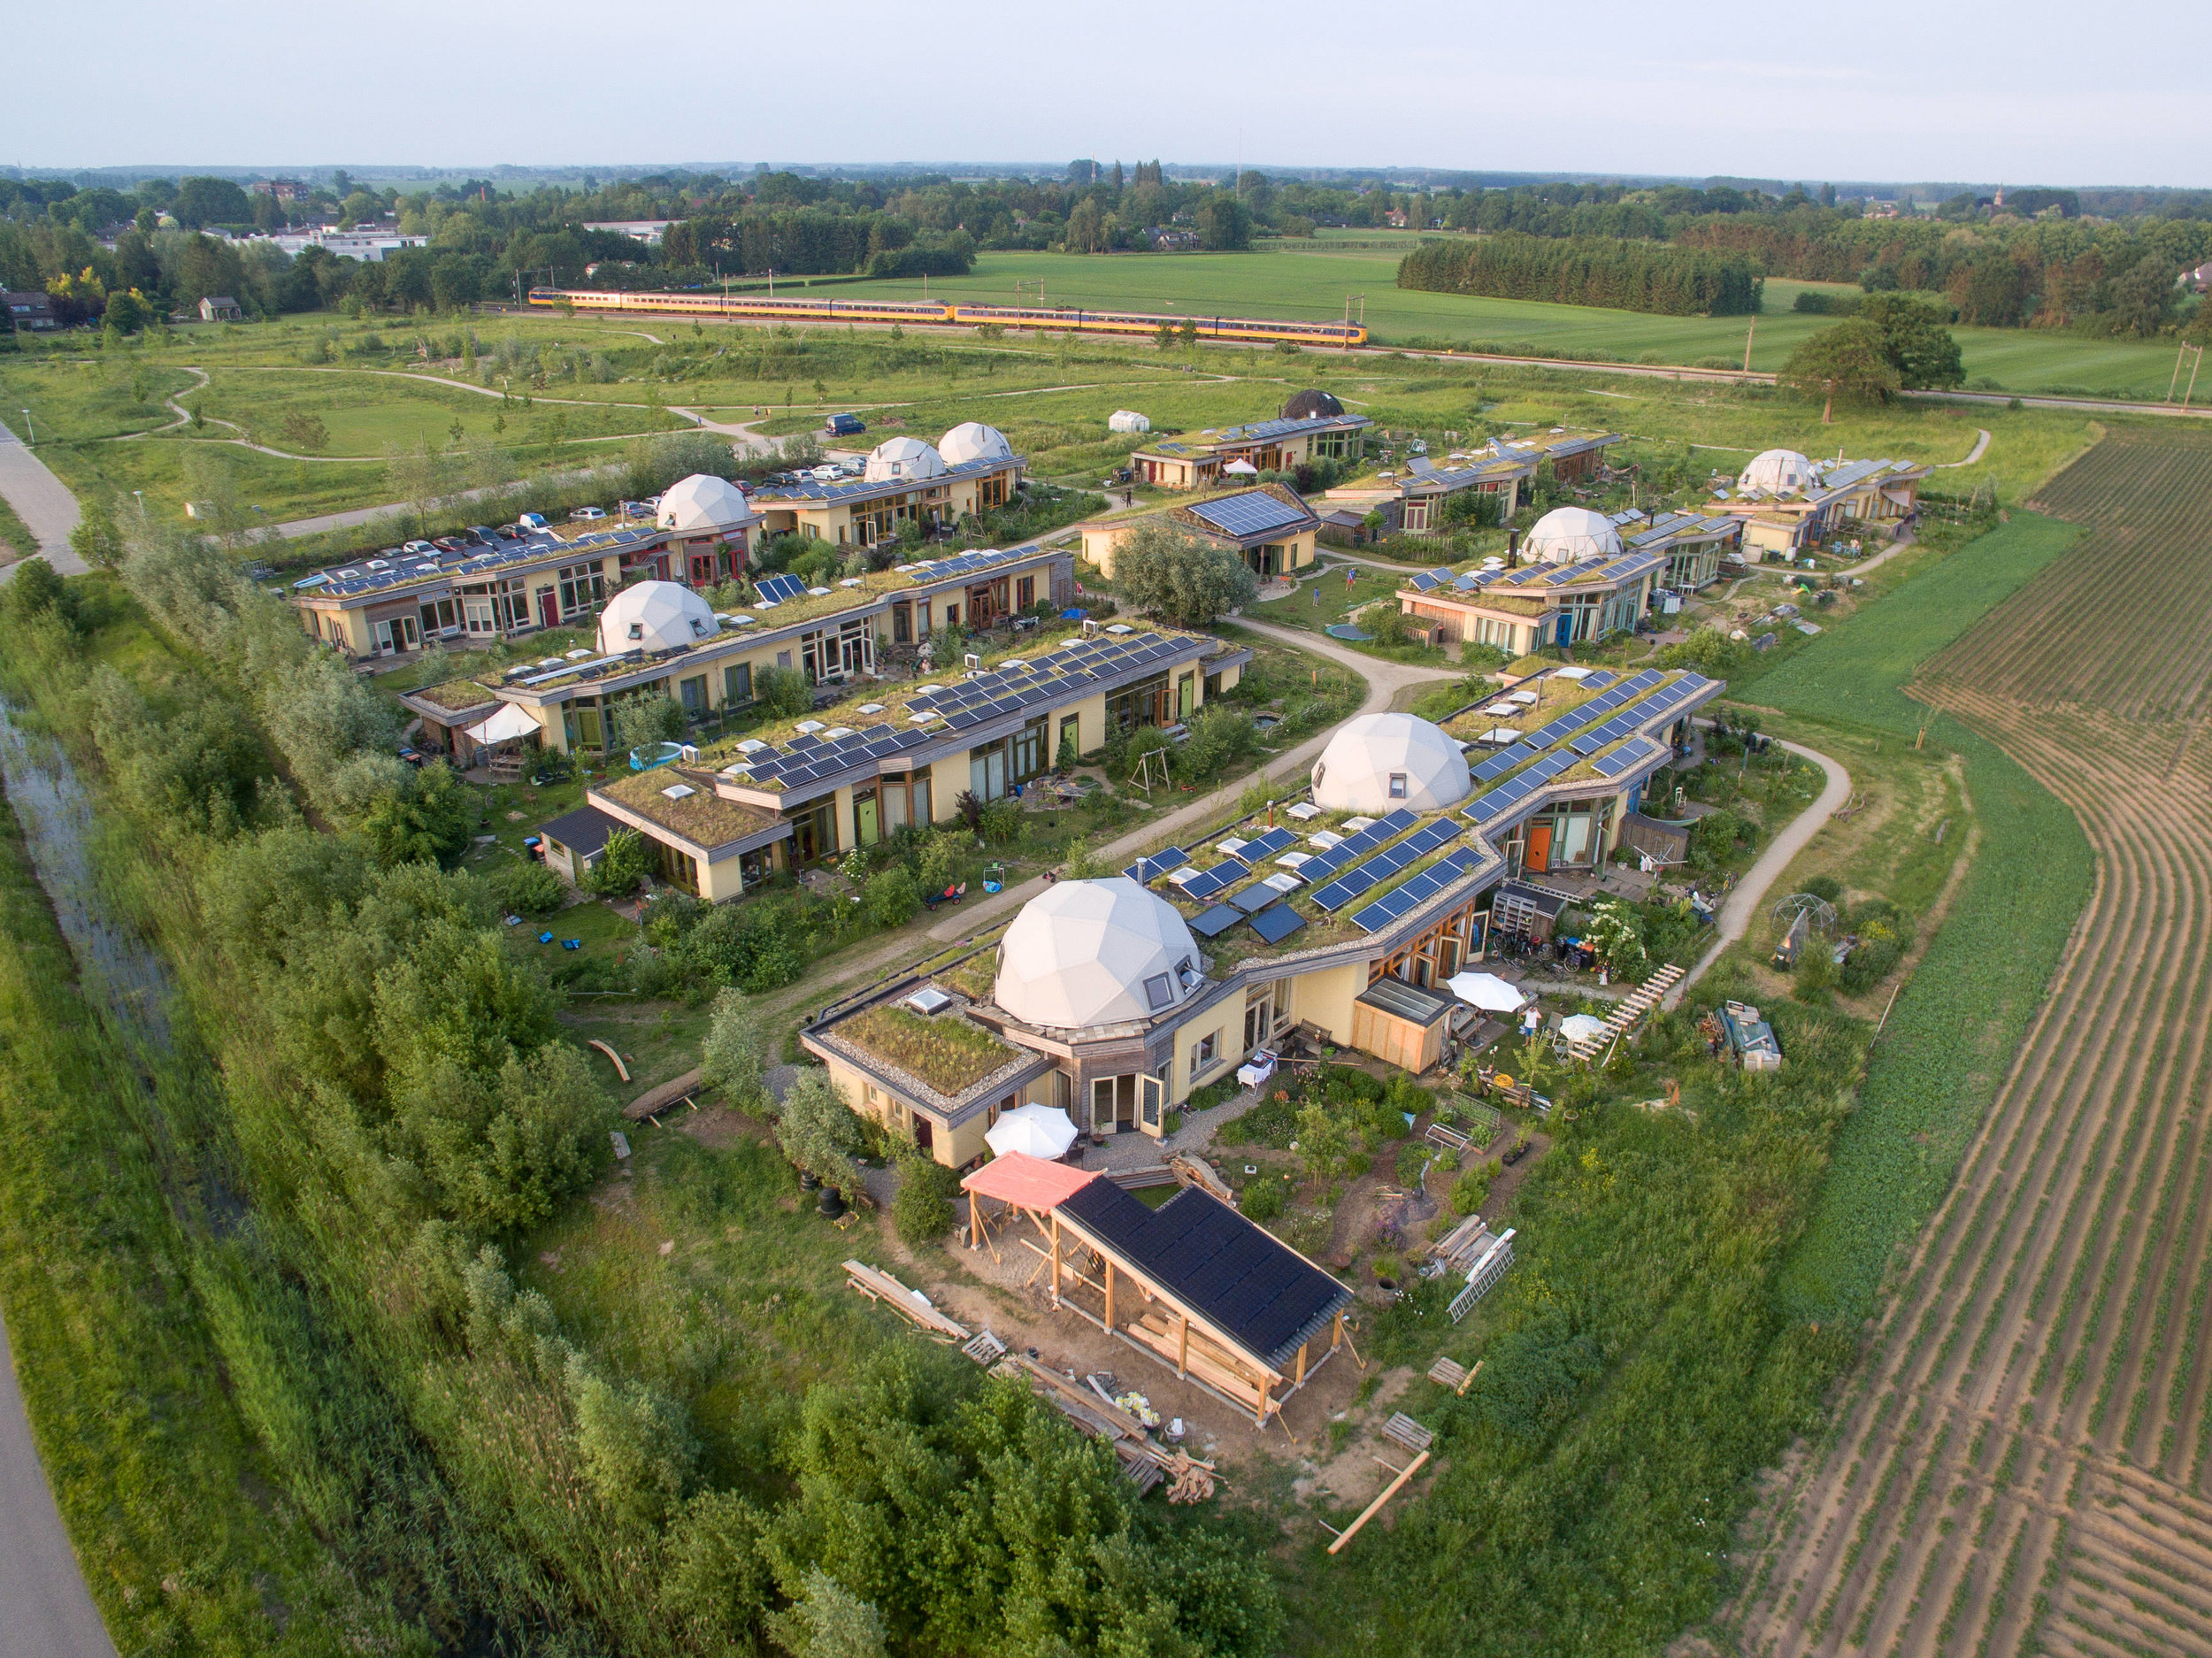 An ecovillage in the Netherlands houses 70 people and produces 75% of its own energy.